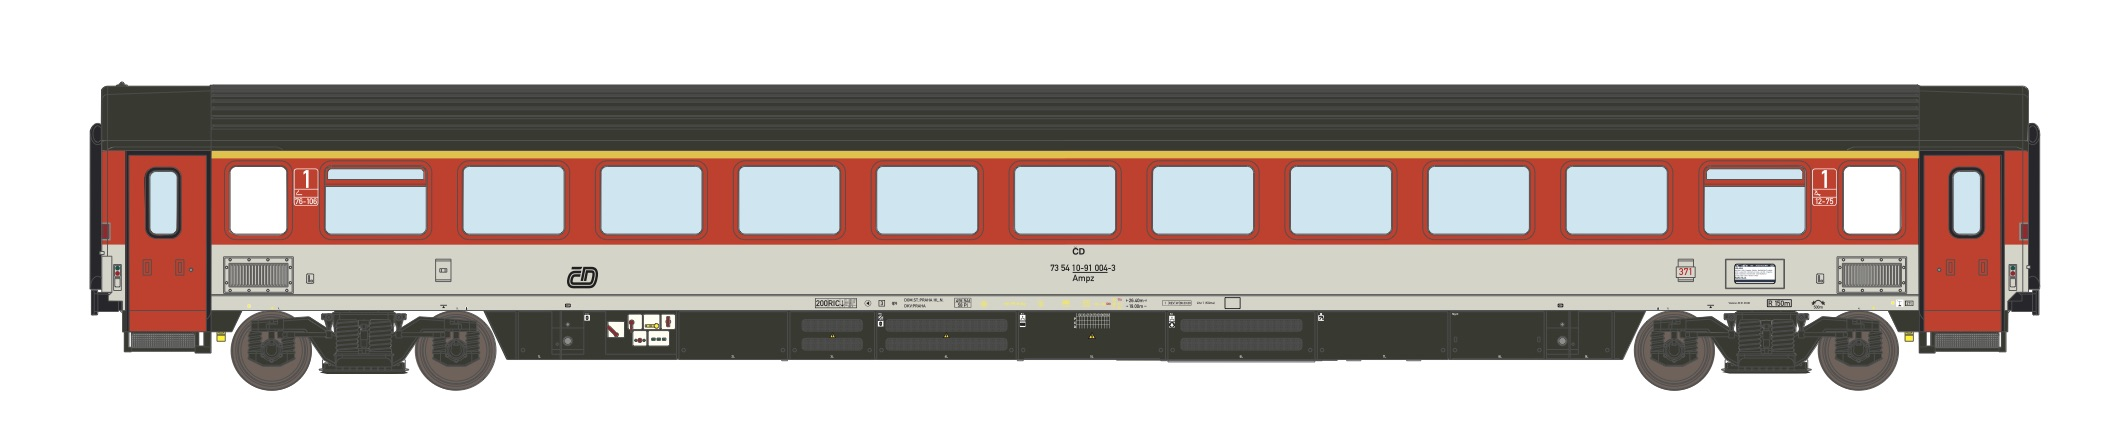 195454: EuroCity saloon car 1. class, type Ampz 146 of the Czech Railways CD